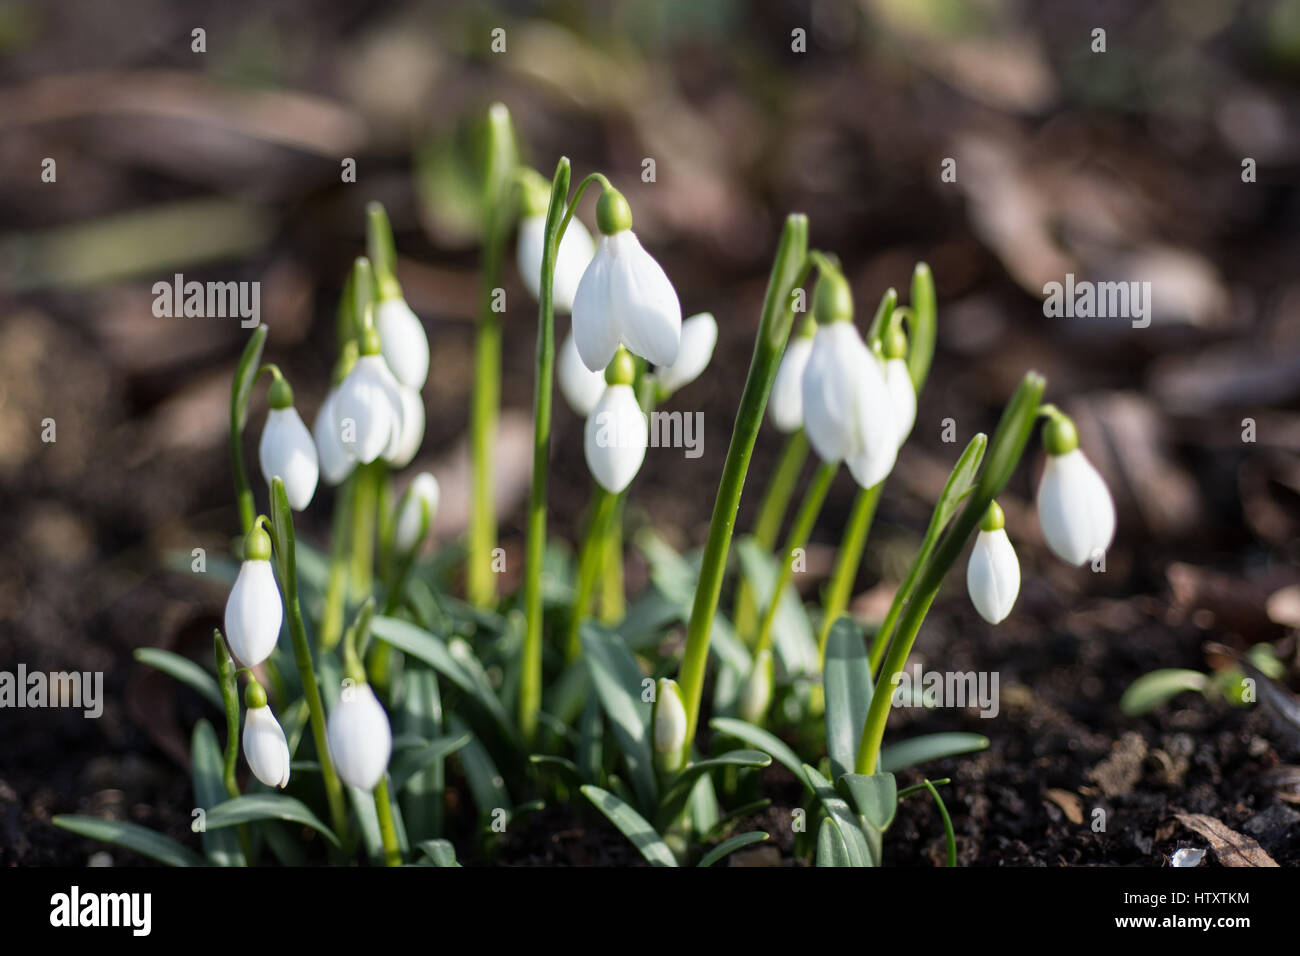 Group of Galanthus rizenhensis in flower - Stock Image